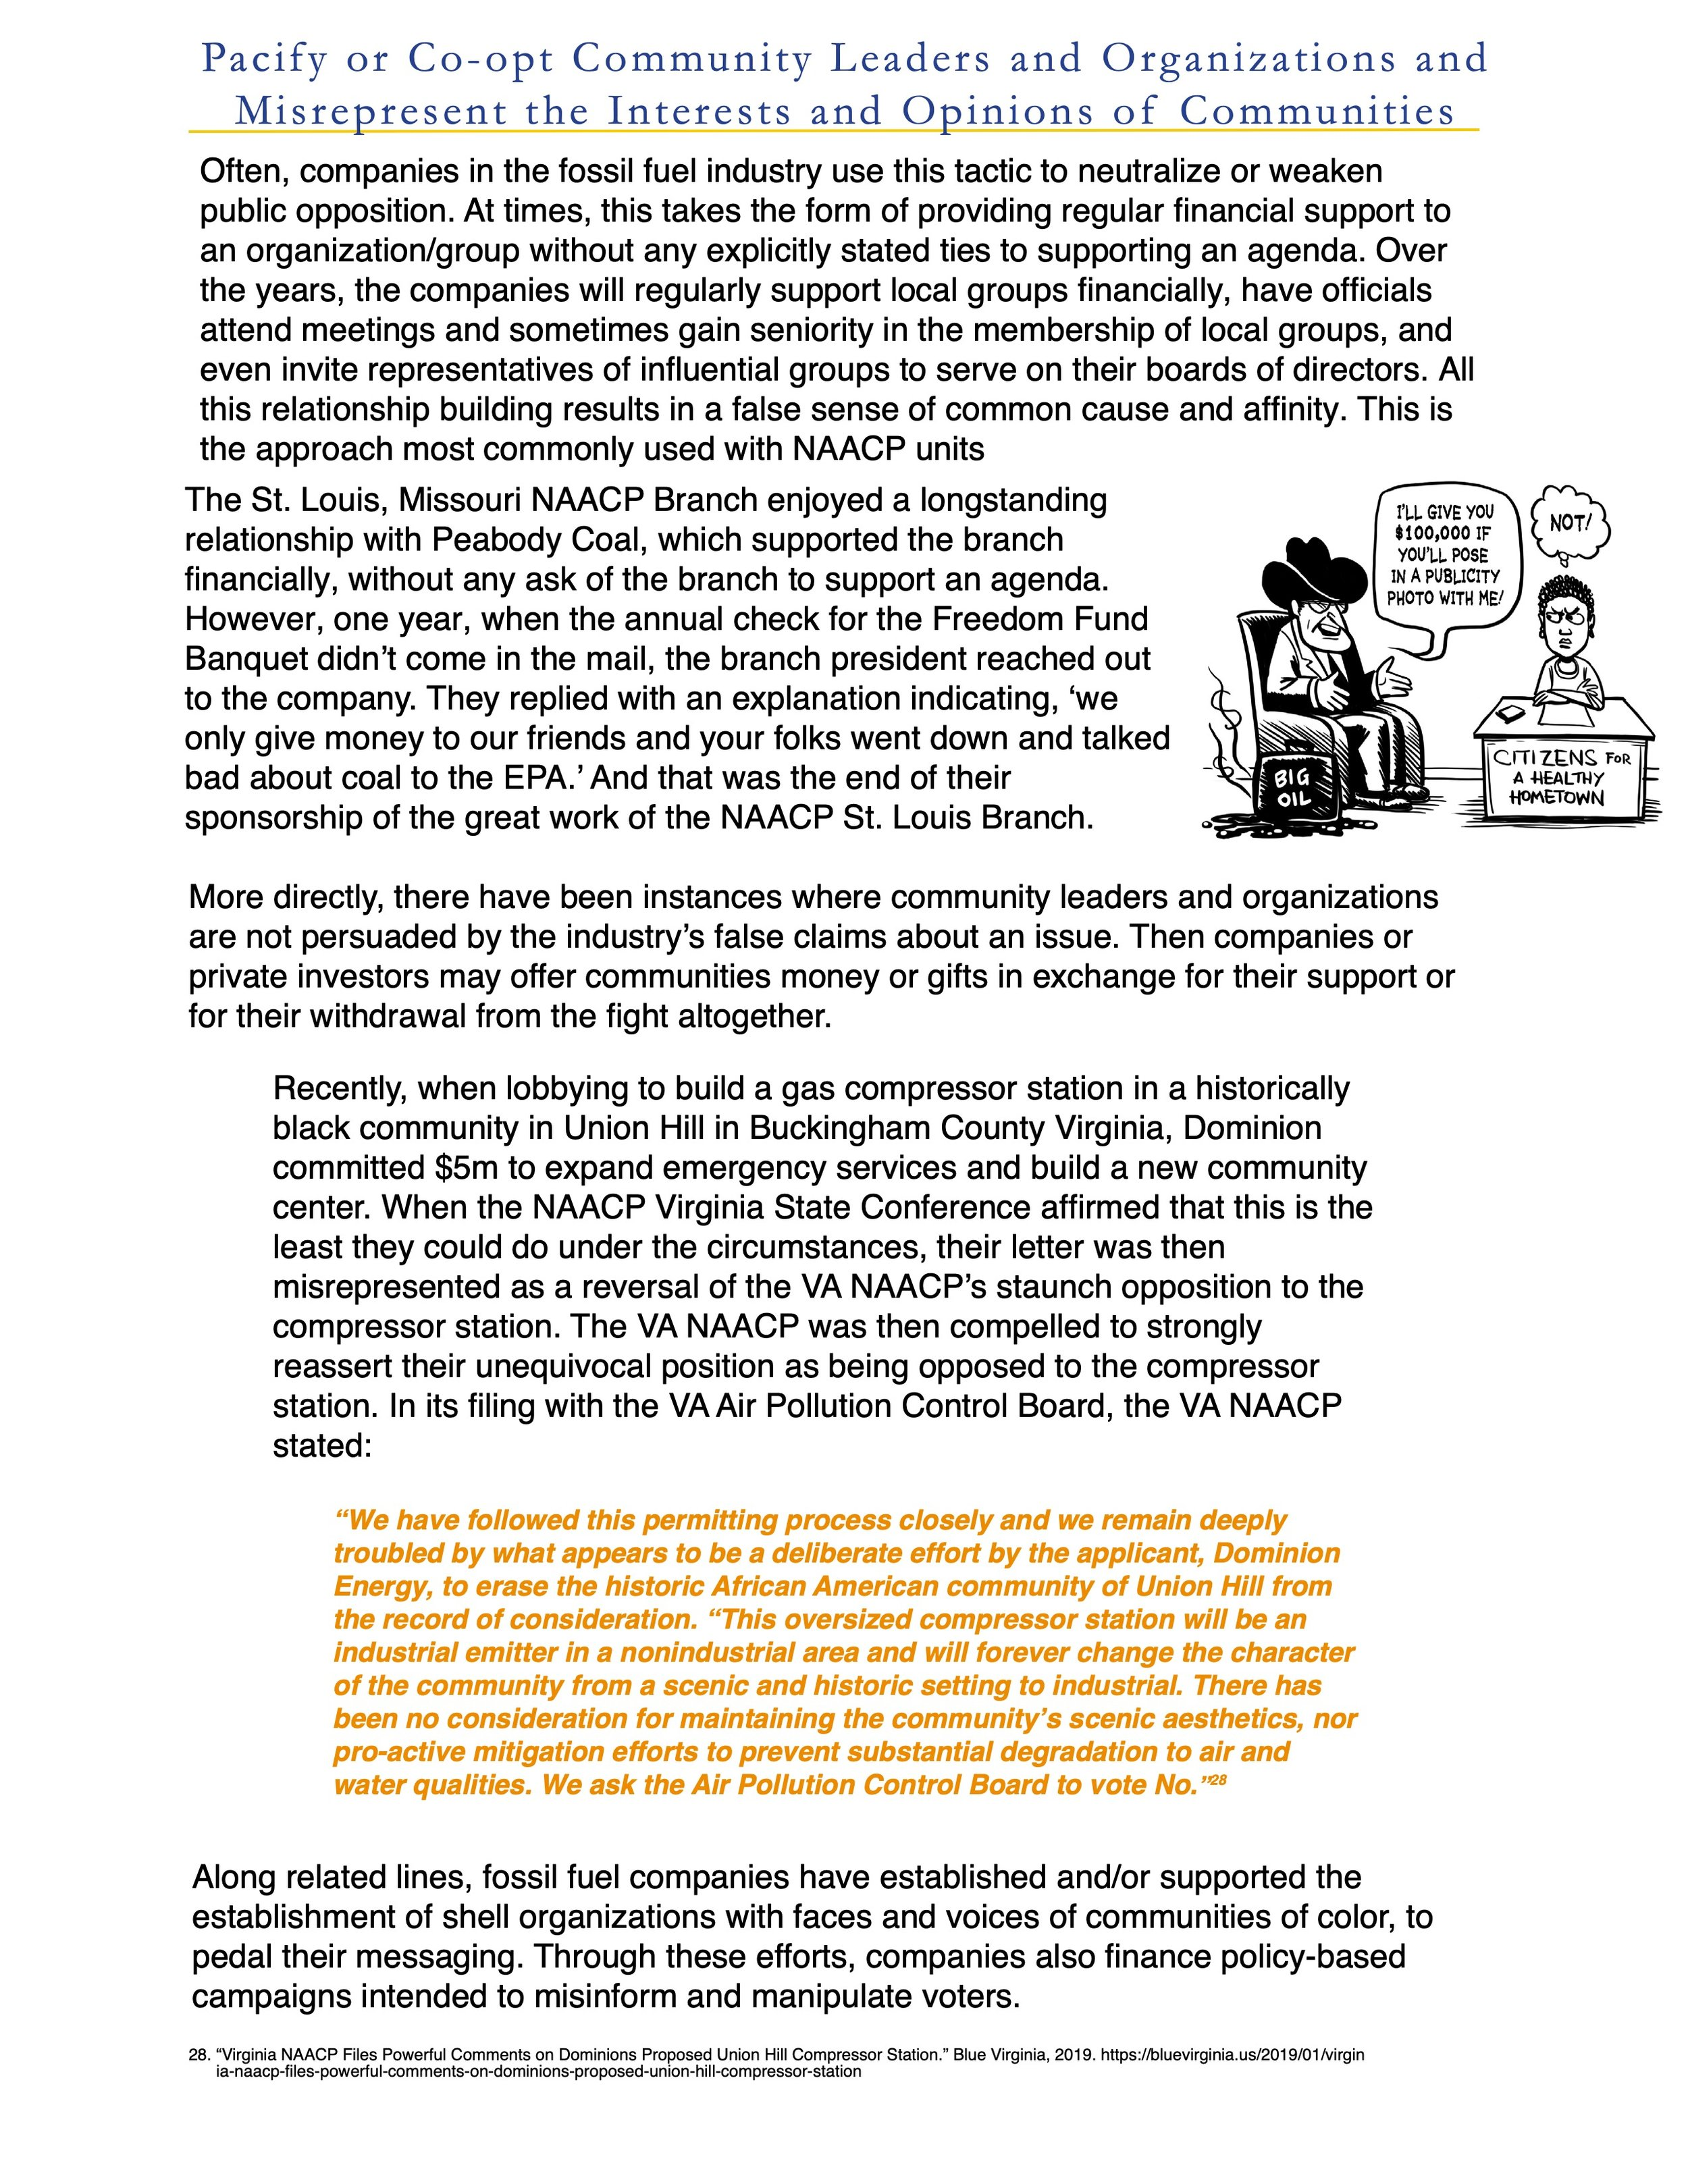 Fossil-Fueled-Foolery-An-Illustrated-Primer-on-the-Top-10-Manipulation-Tactics-of-the-Fossil-Fuel-Industry 12.jpeg